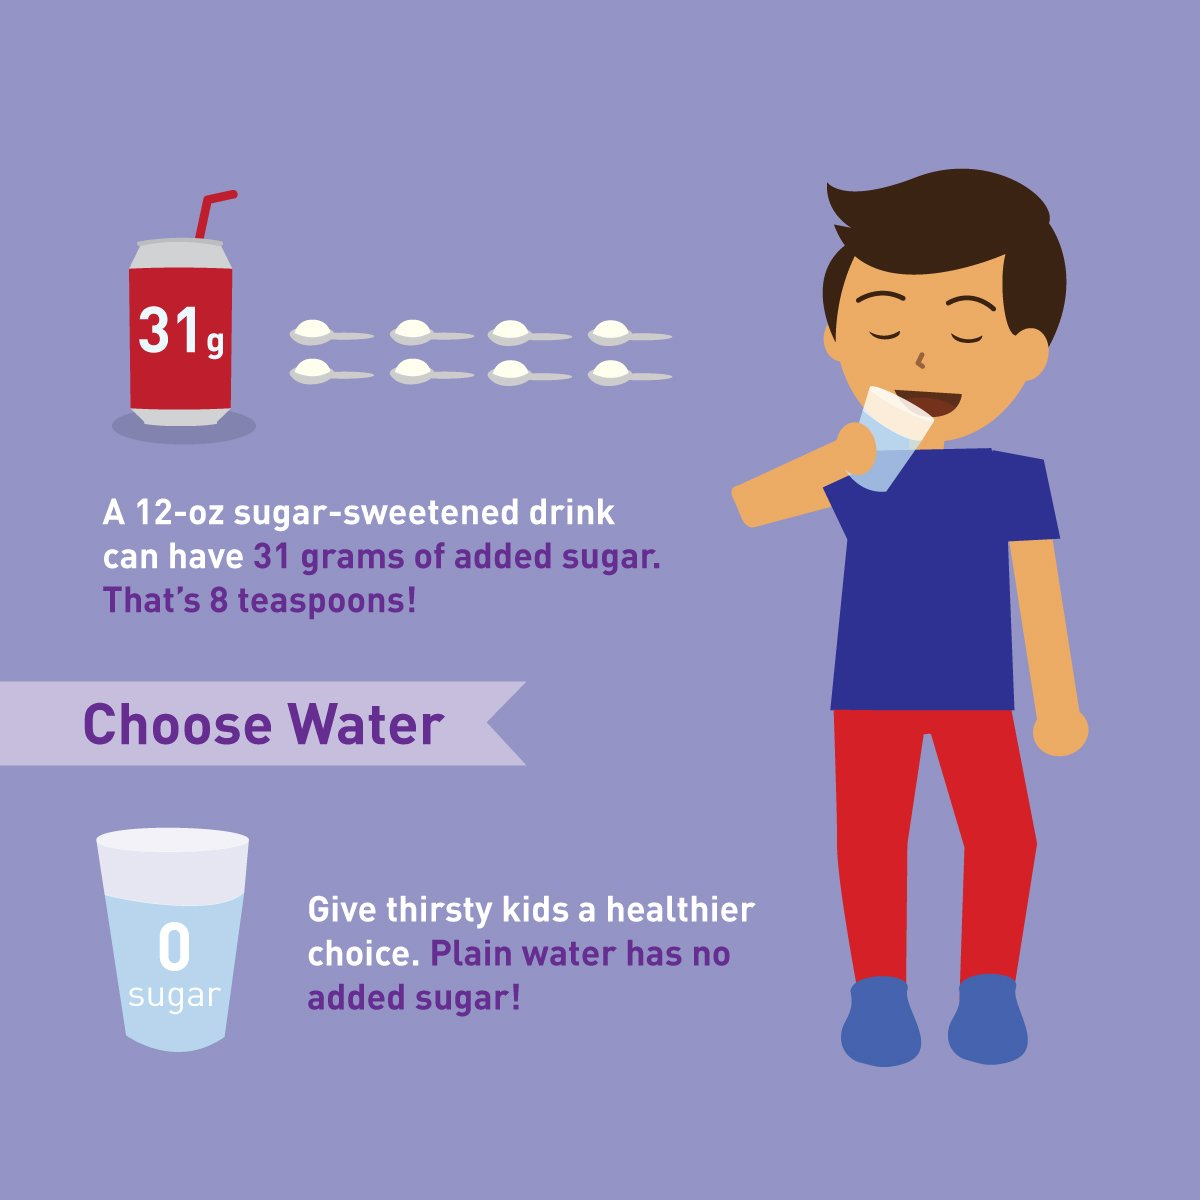 Thirsty? Choose water instead of sugar sweetened beverages. #WorldHealthDay https://t.co/yfBTXl7crv